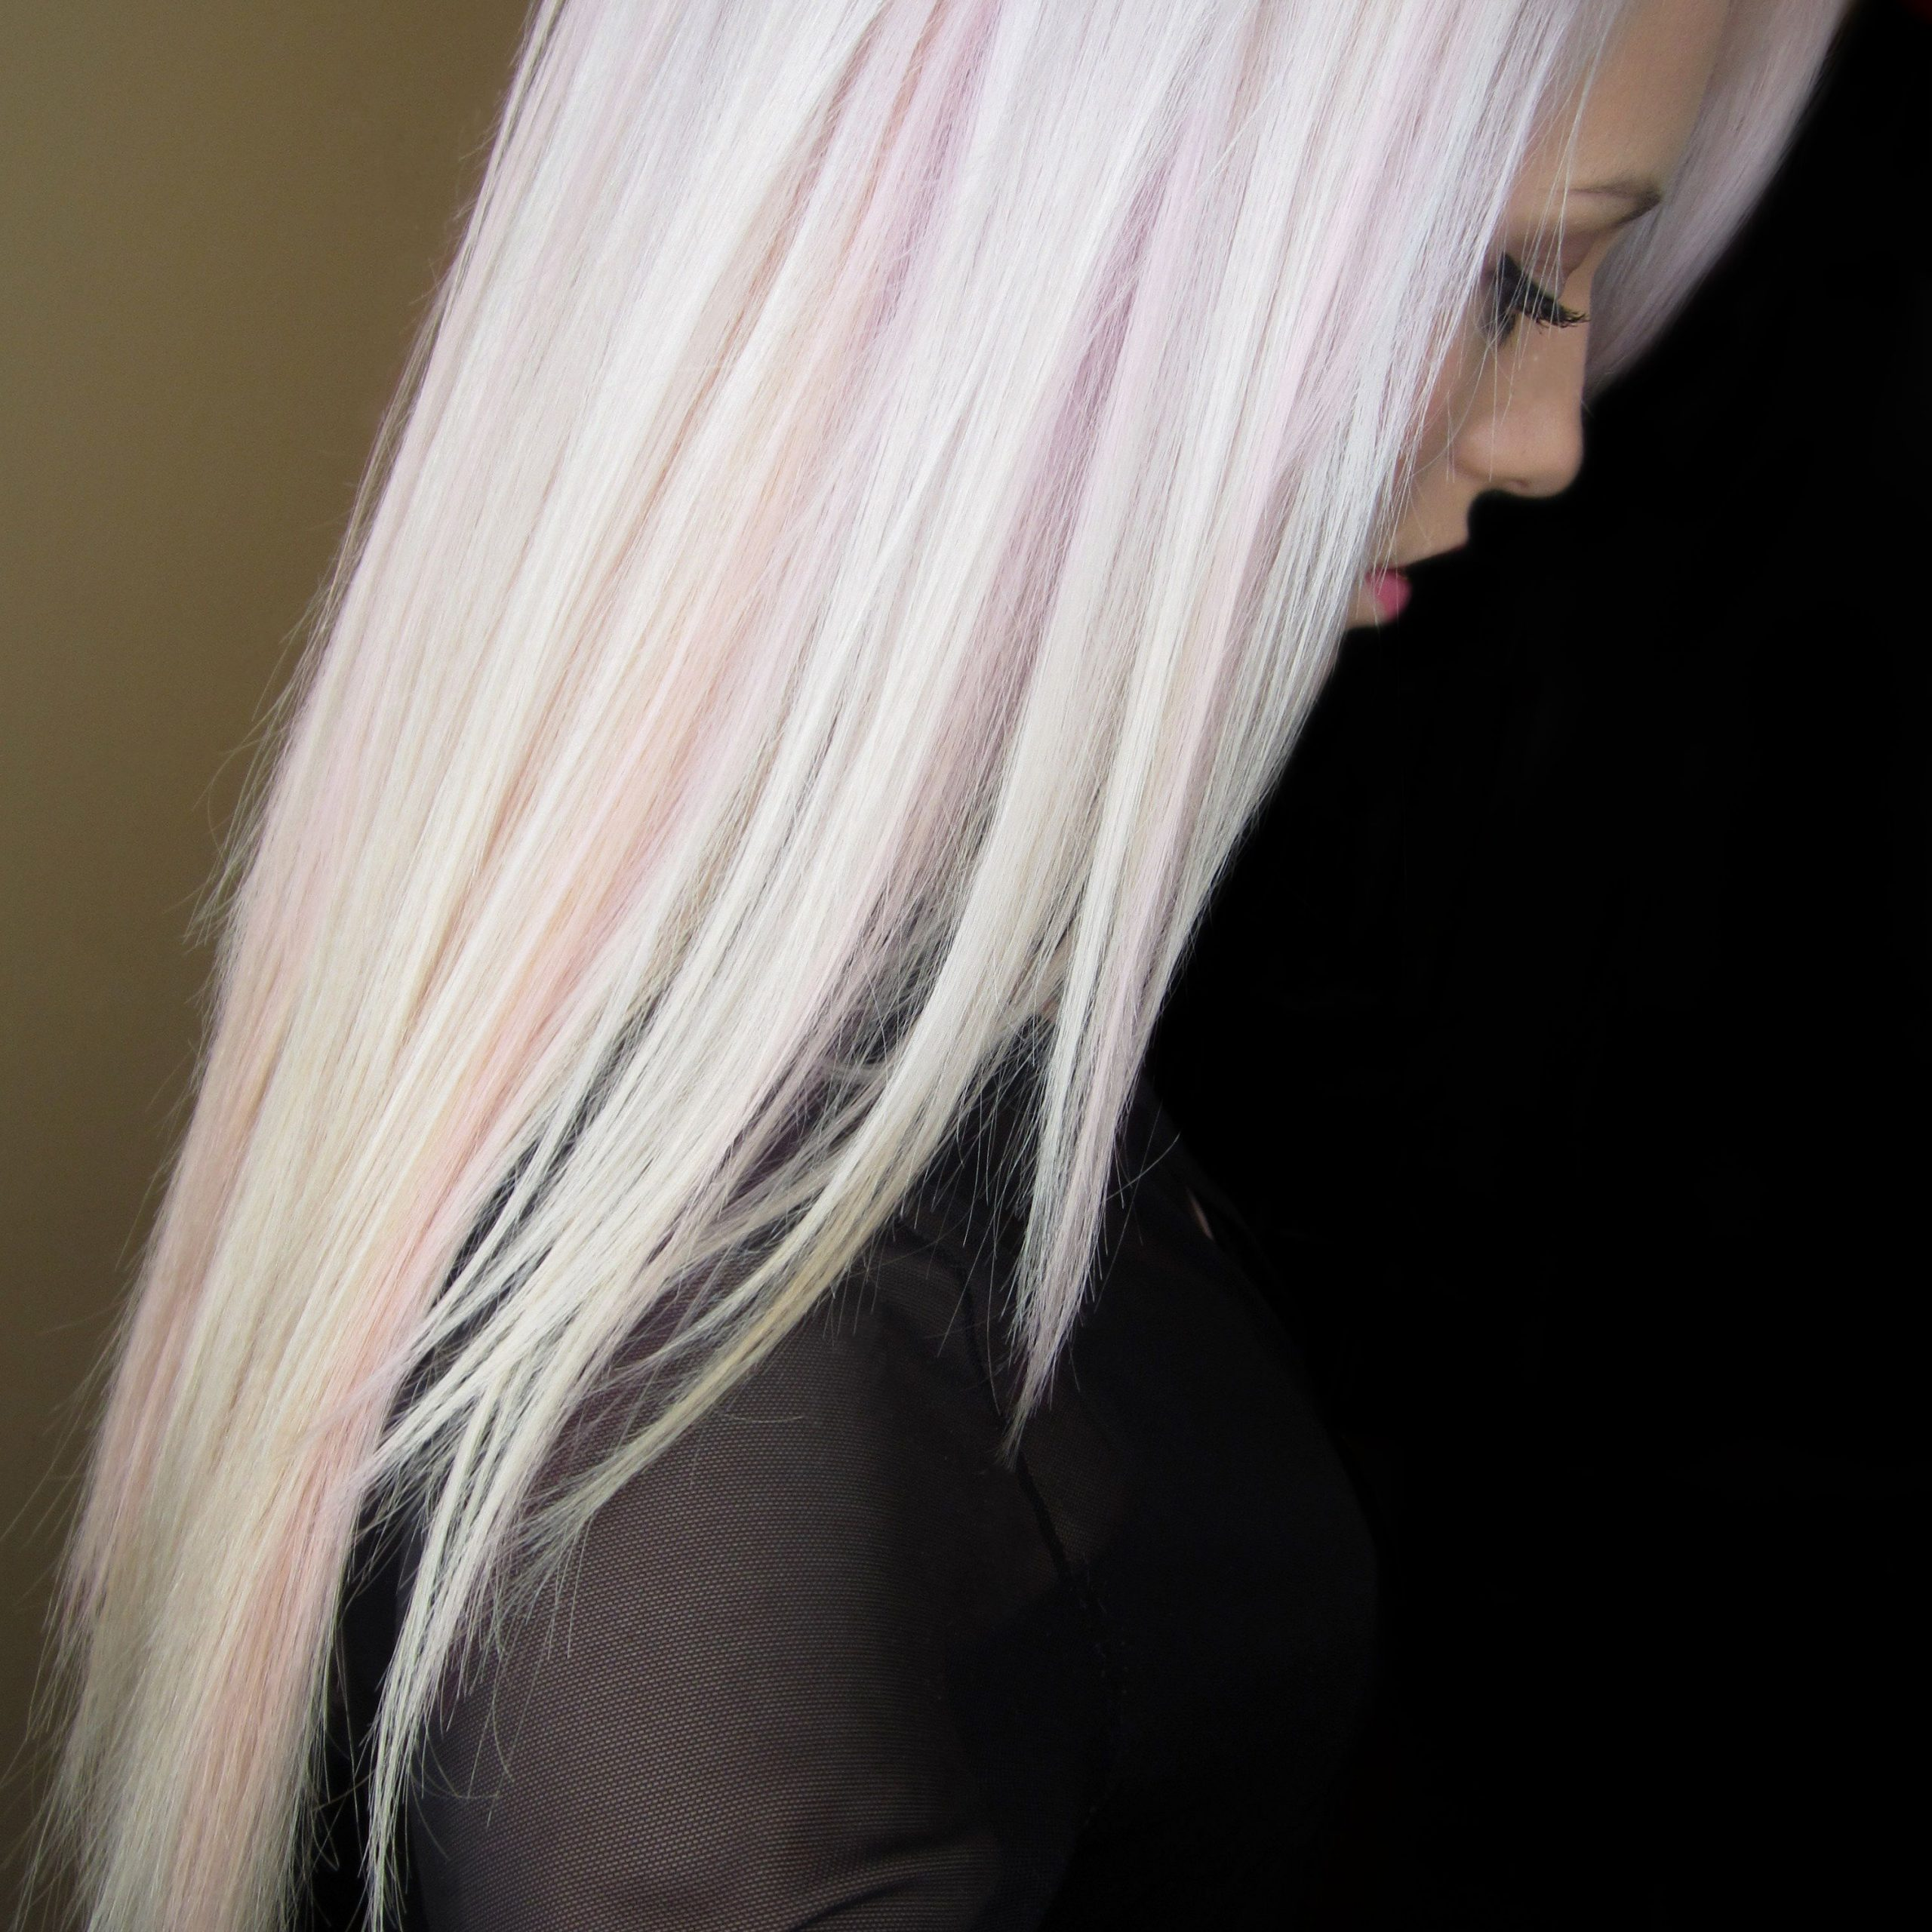 Pink Blonde Hair, White Blonde Hair Within Fashionable Baby Pink Braids Hairstyles (Gallery 10 of 20)